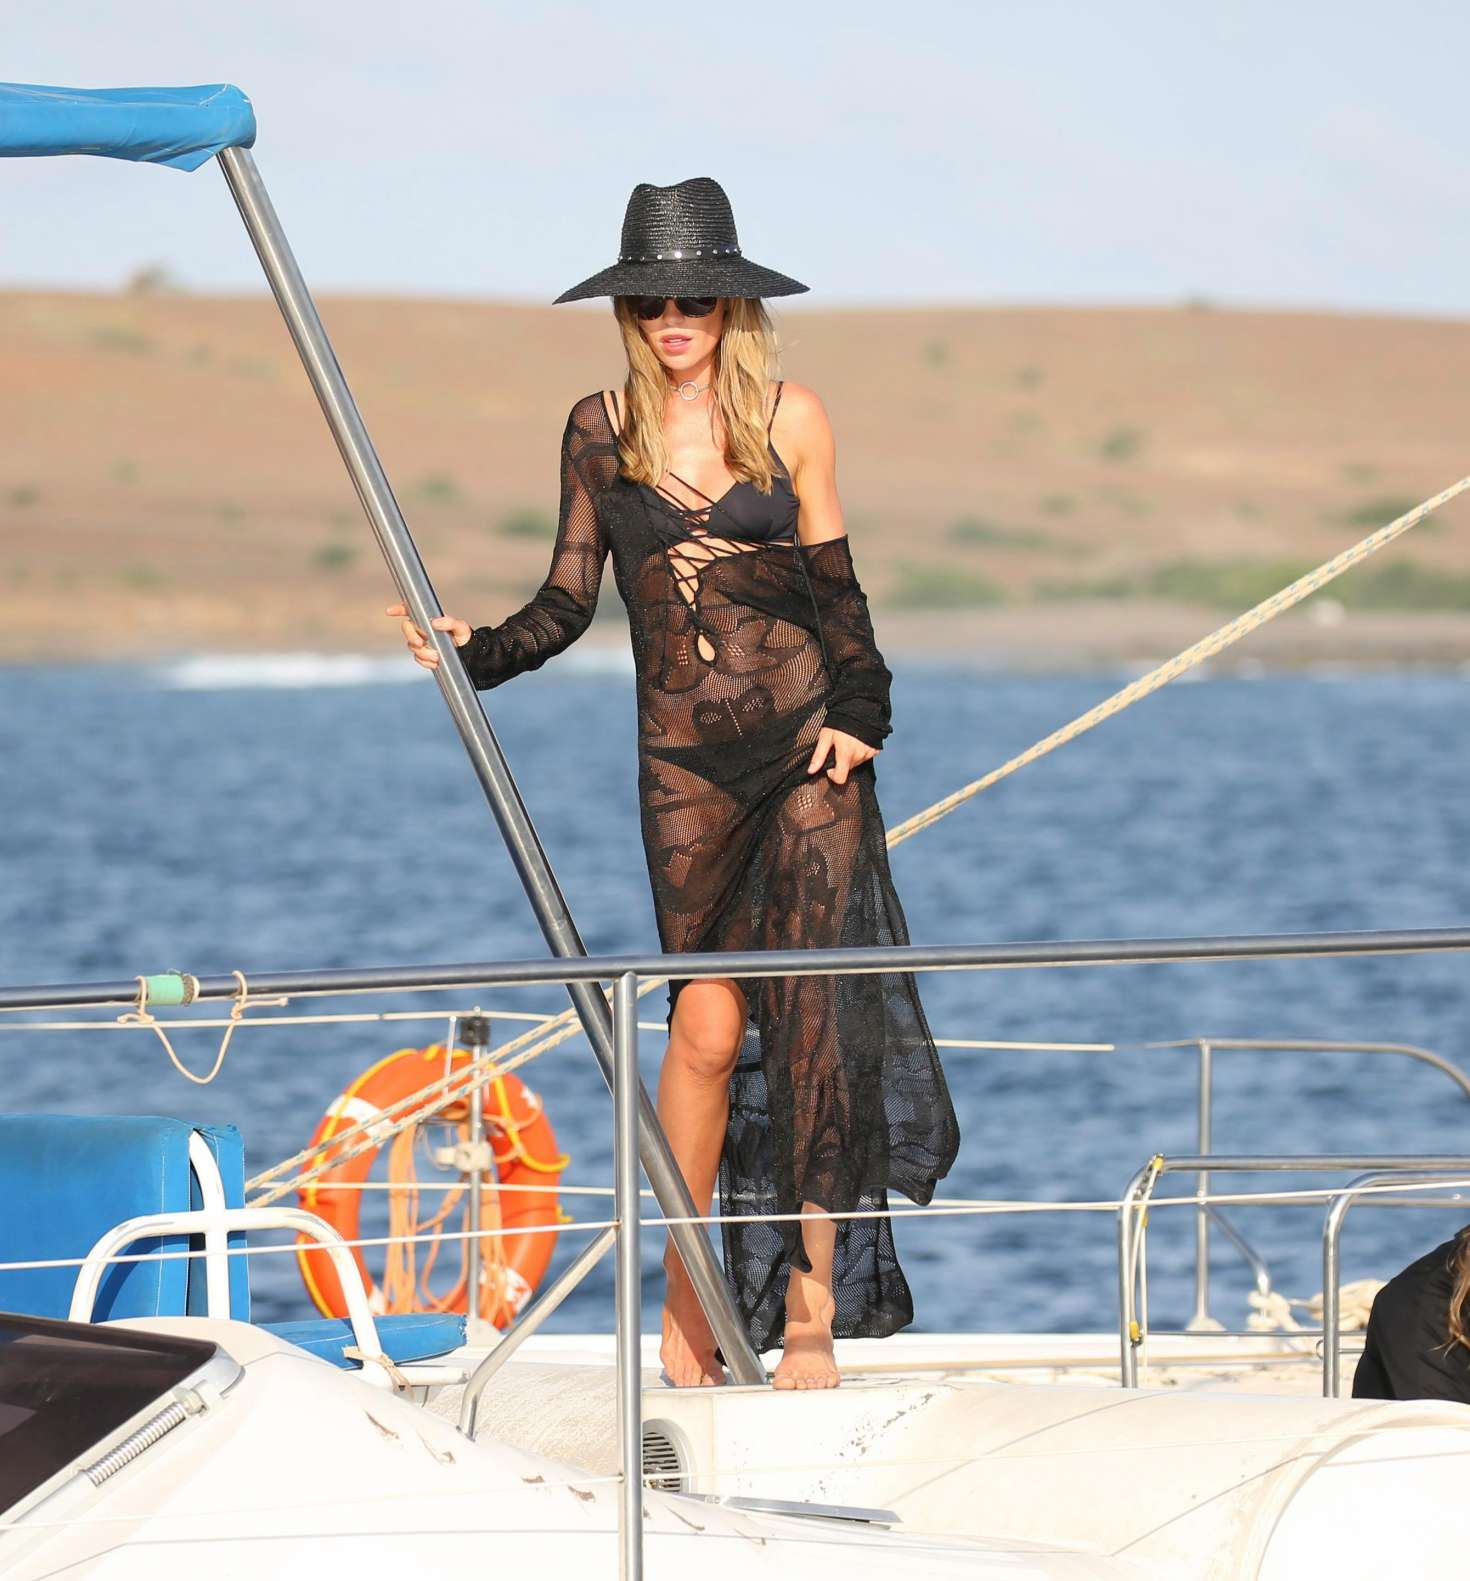 Abbey Clancy - Swimwear Photoshoot For 'Britain's Next Top Model' on Yacht in Cape Verde